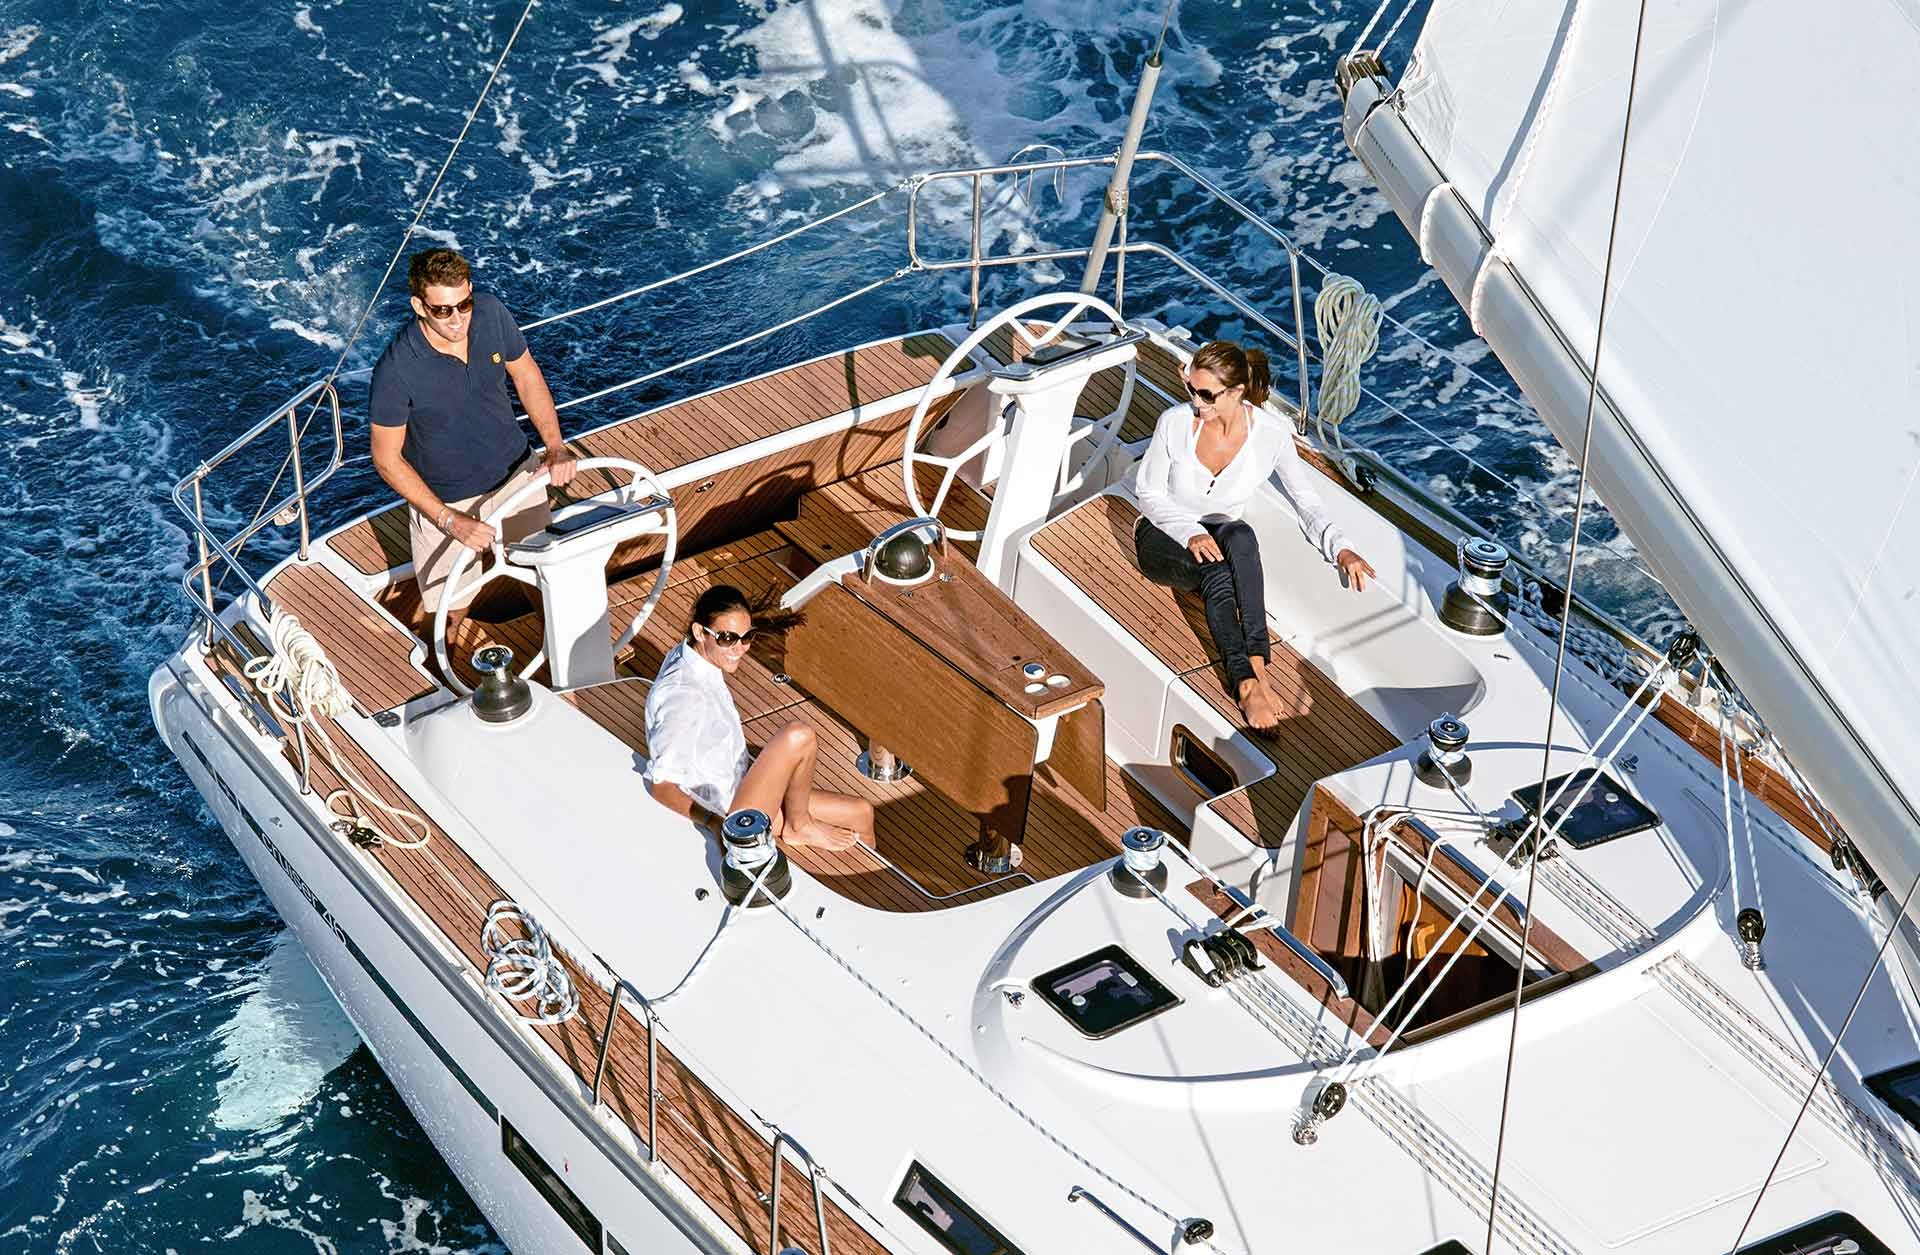 Bavaria Cruiser 46 (3Cab) Economy - Sailing Yacht for Charter in Greece